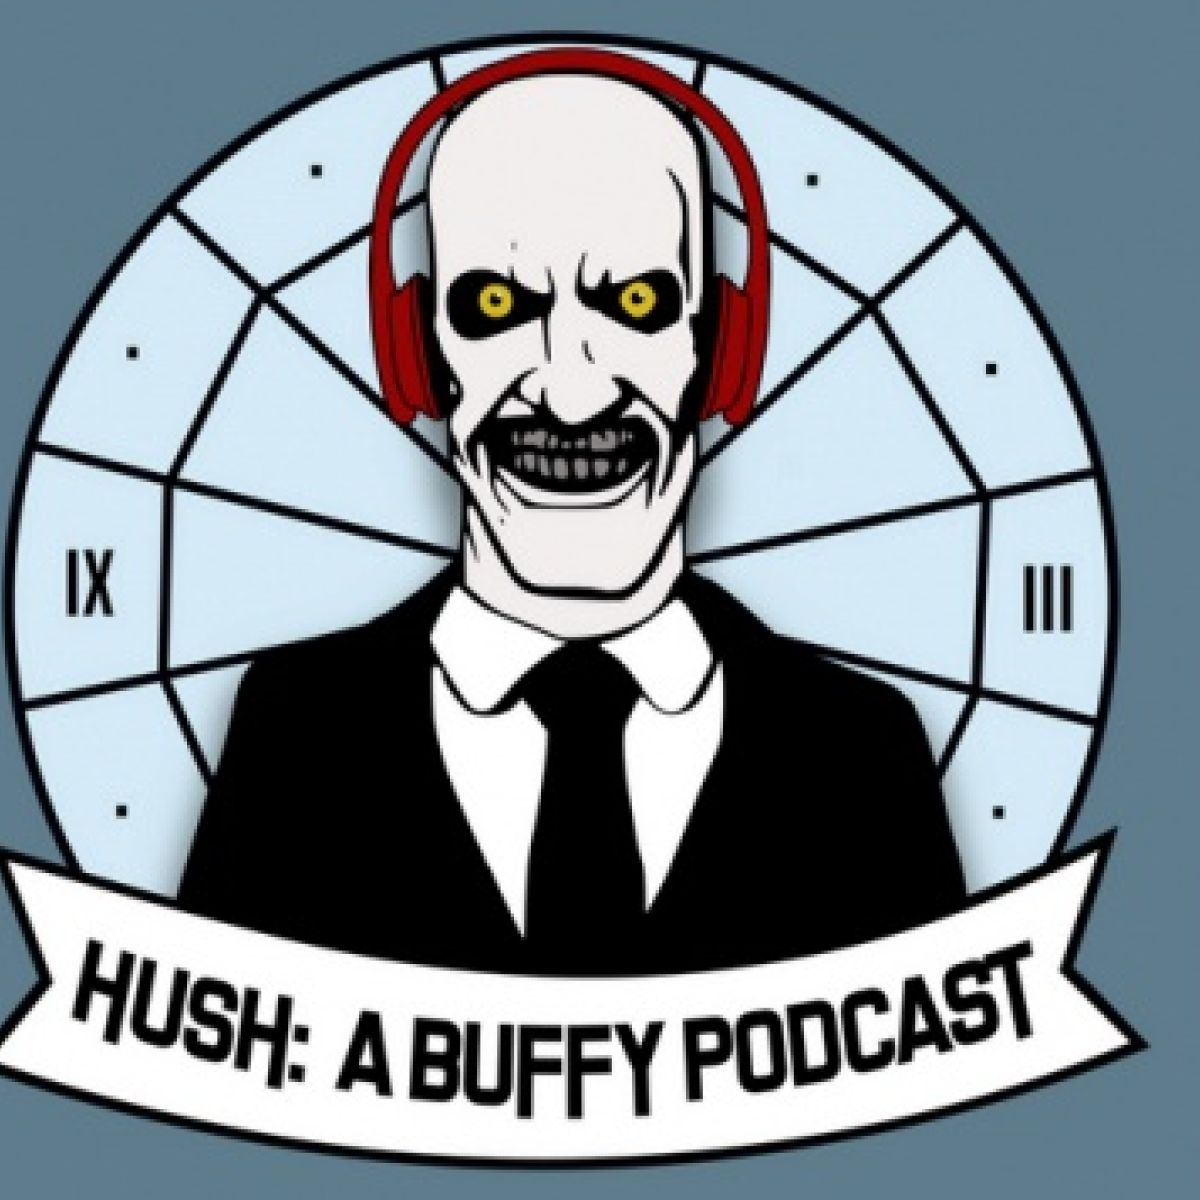 Revisit Hellmouth with Irish made Buffy podcast